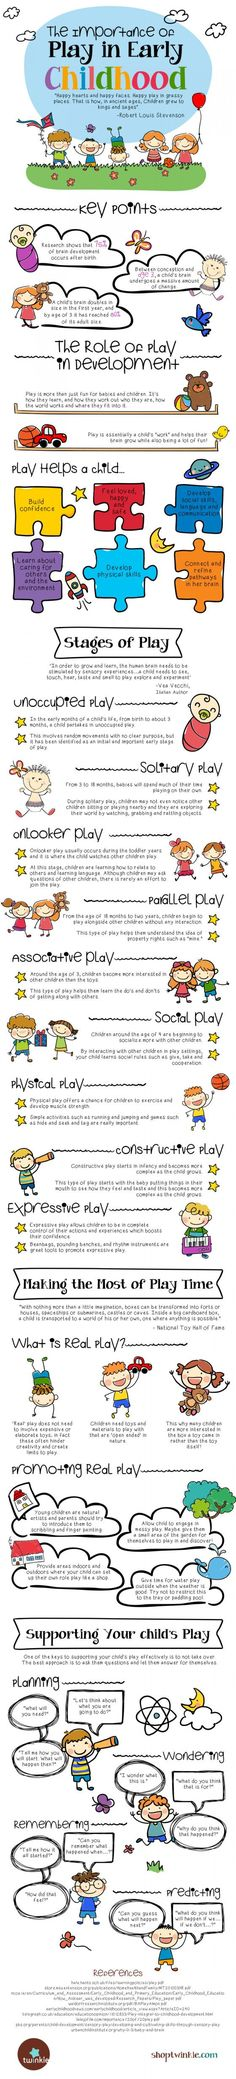 The-importance-of-play-in-early-childhood. How the child develops from birth.